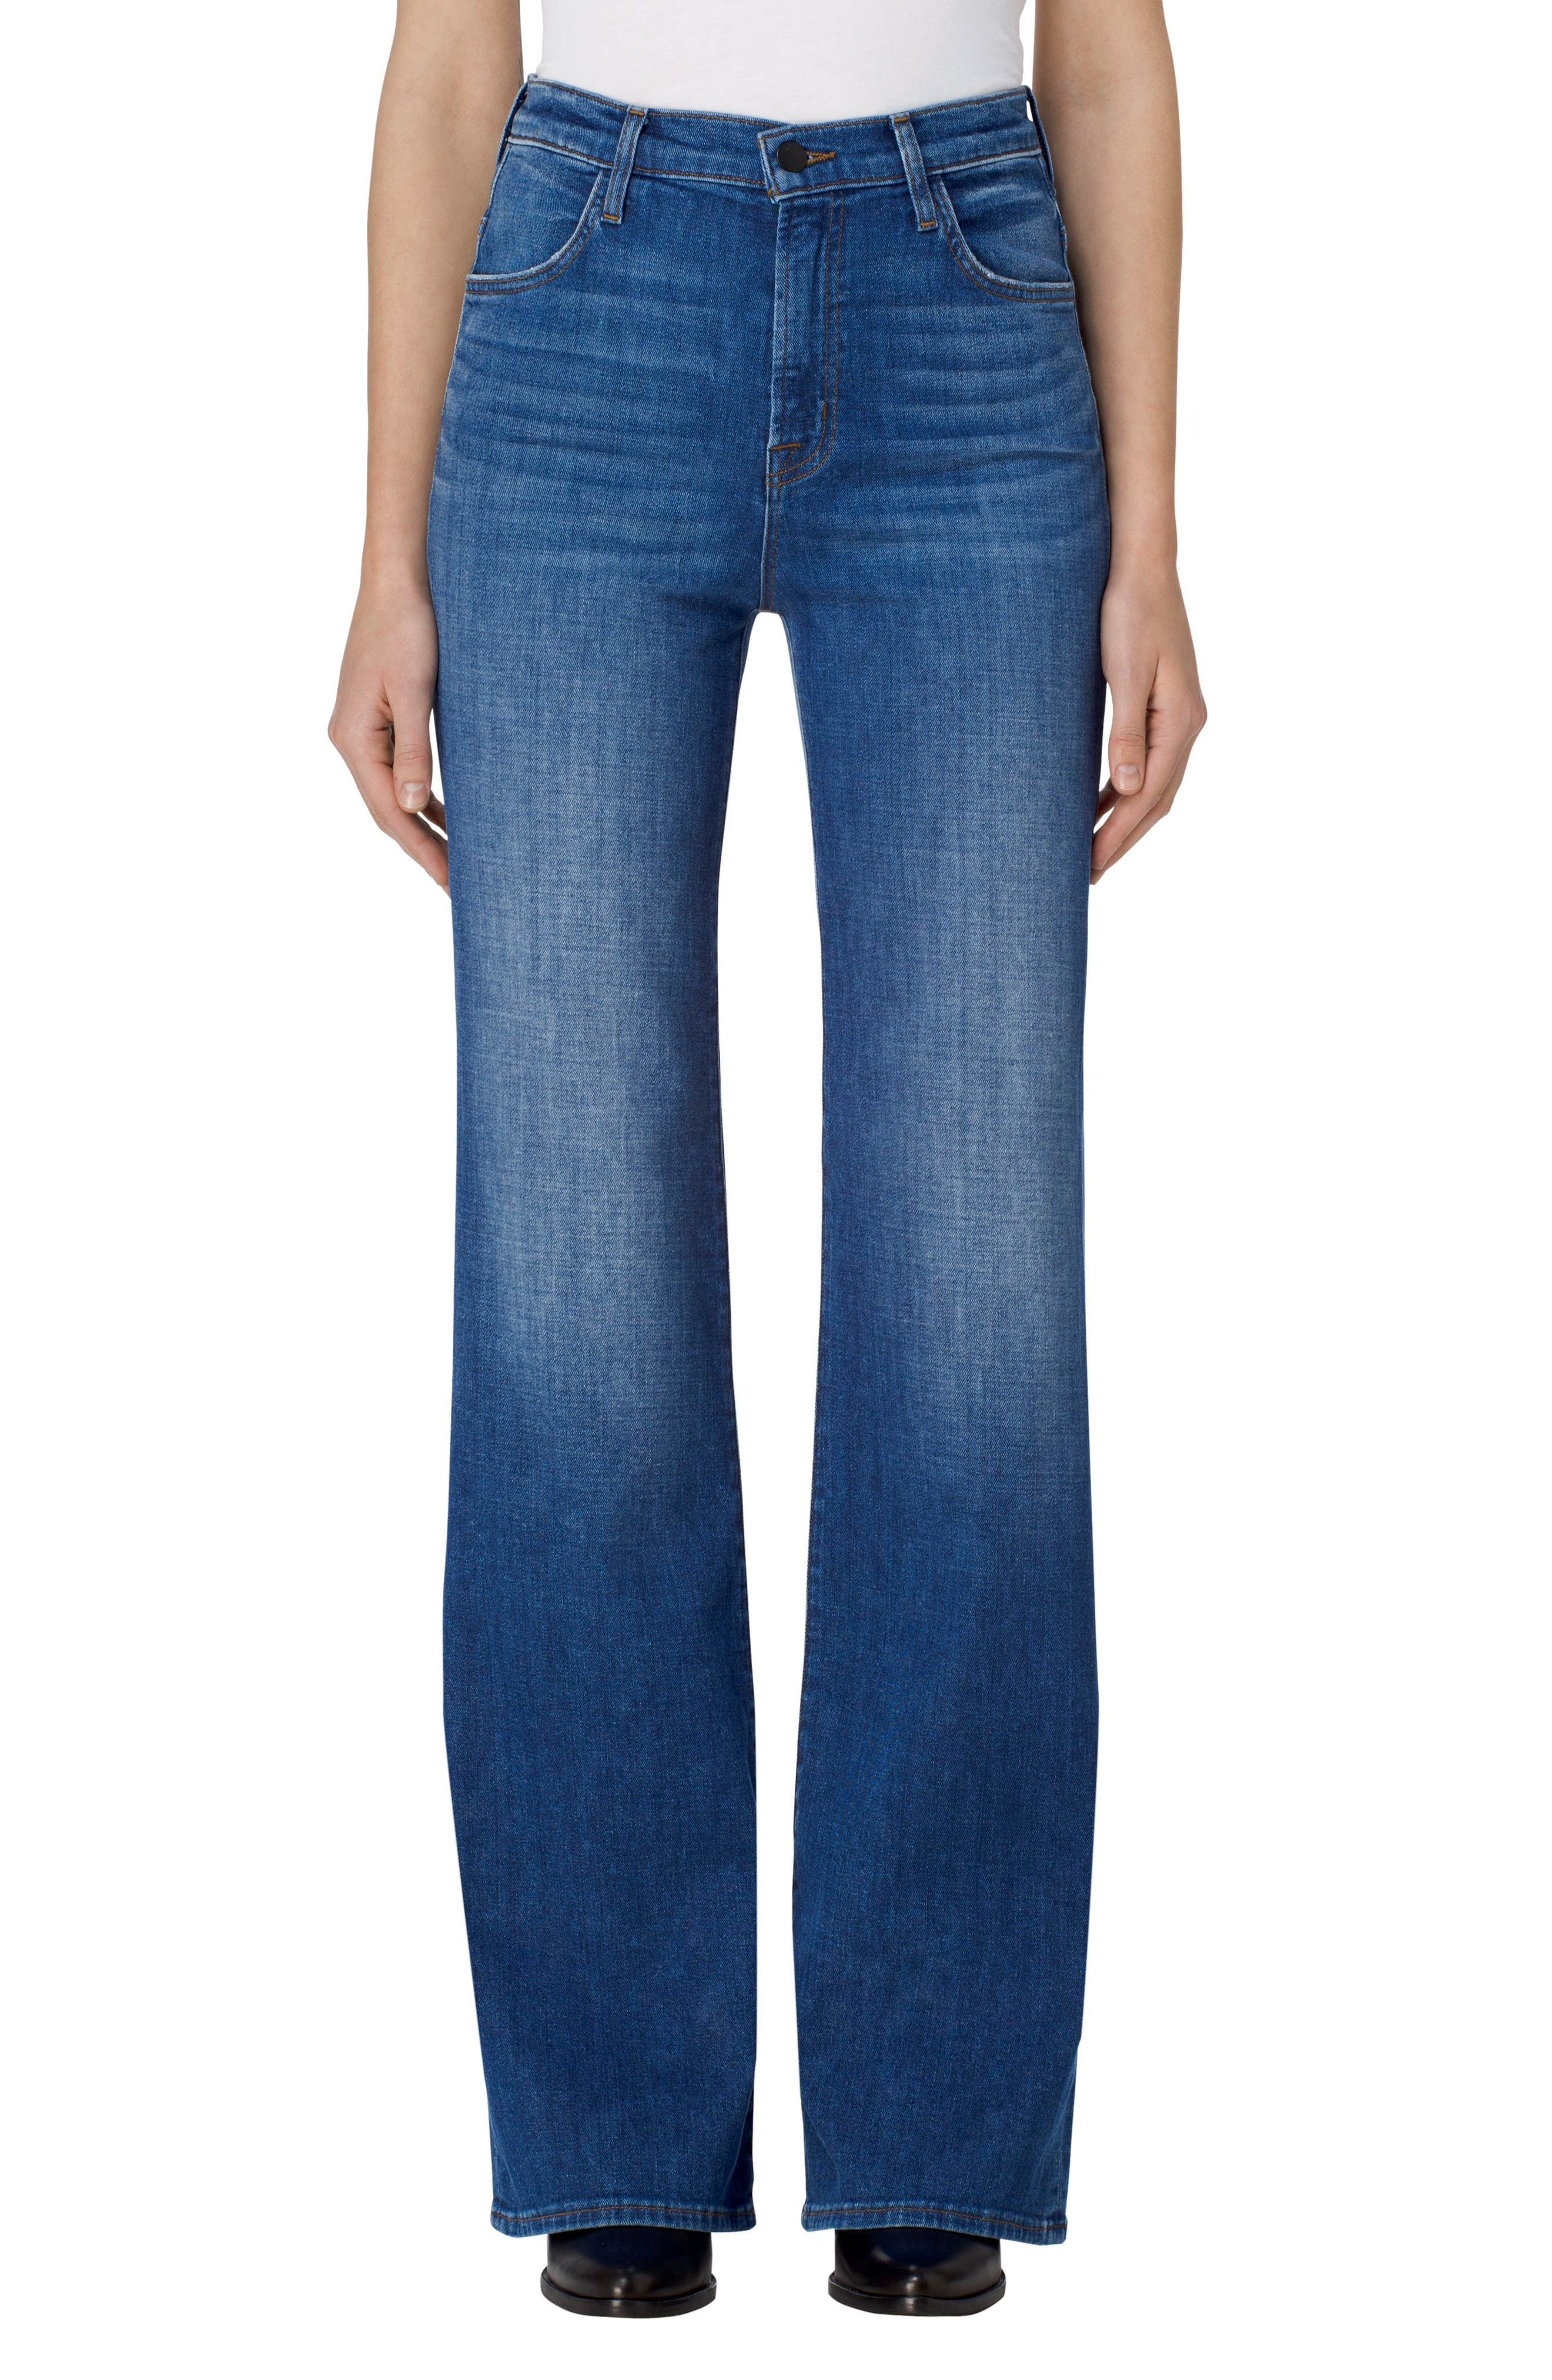 J Brand Joan High Waist Wide Leg Jeans